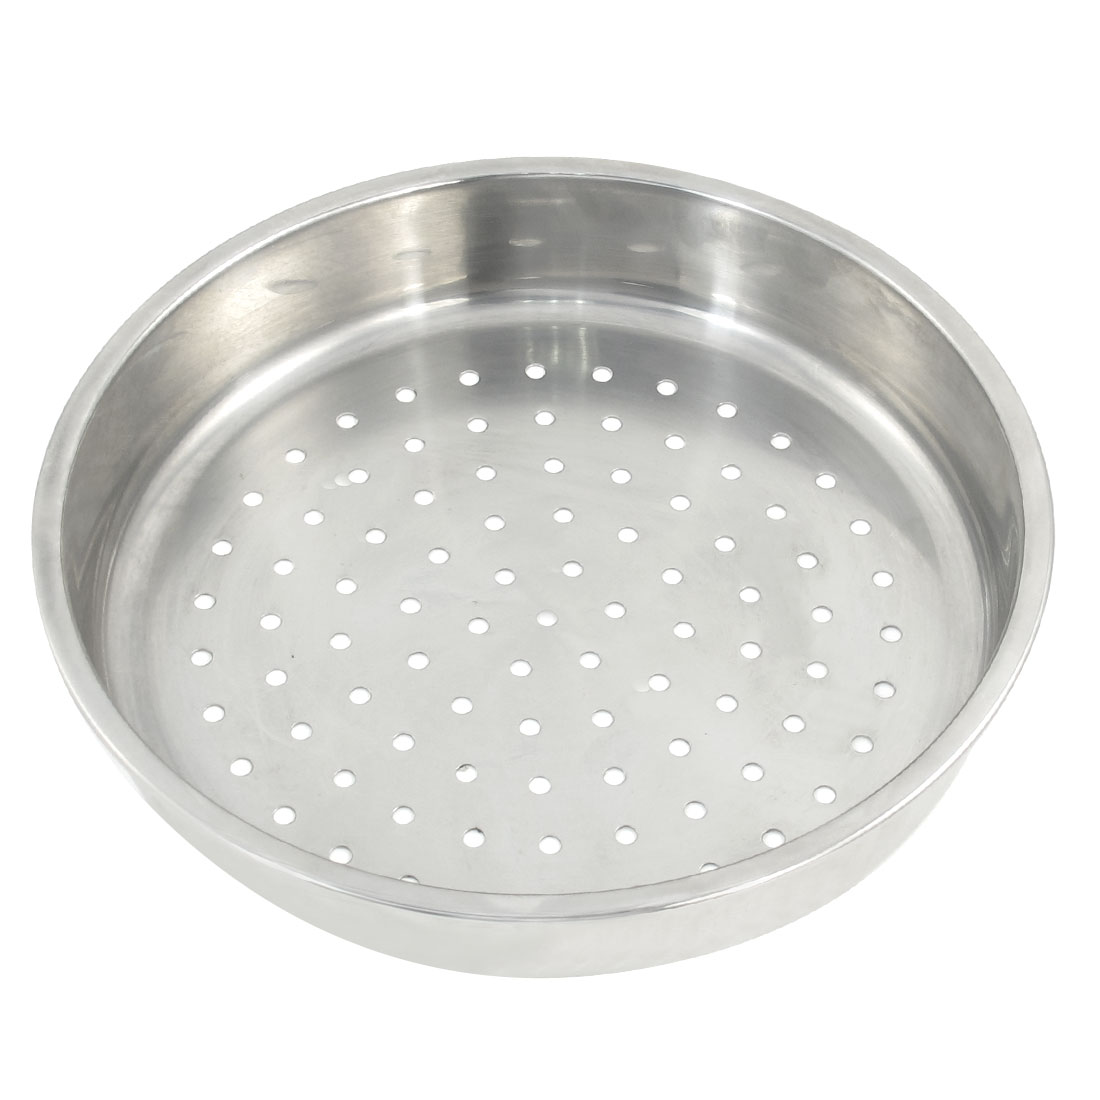 "Home Cookware 9.1"" Dia Round Stainless Steel Food Cooking Steamer Rack"